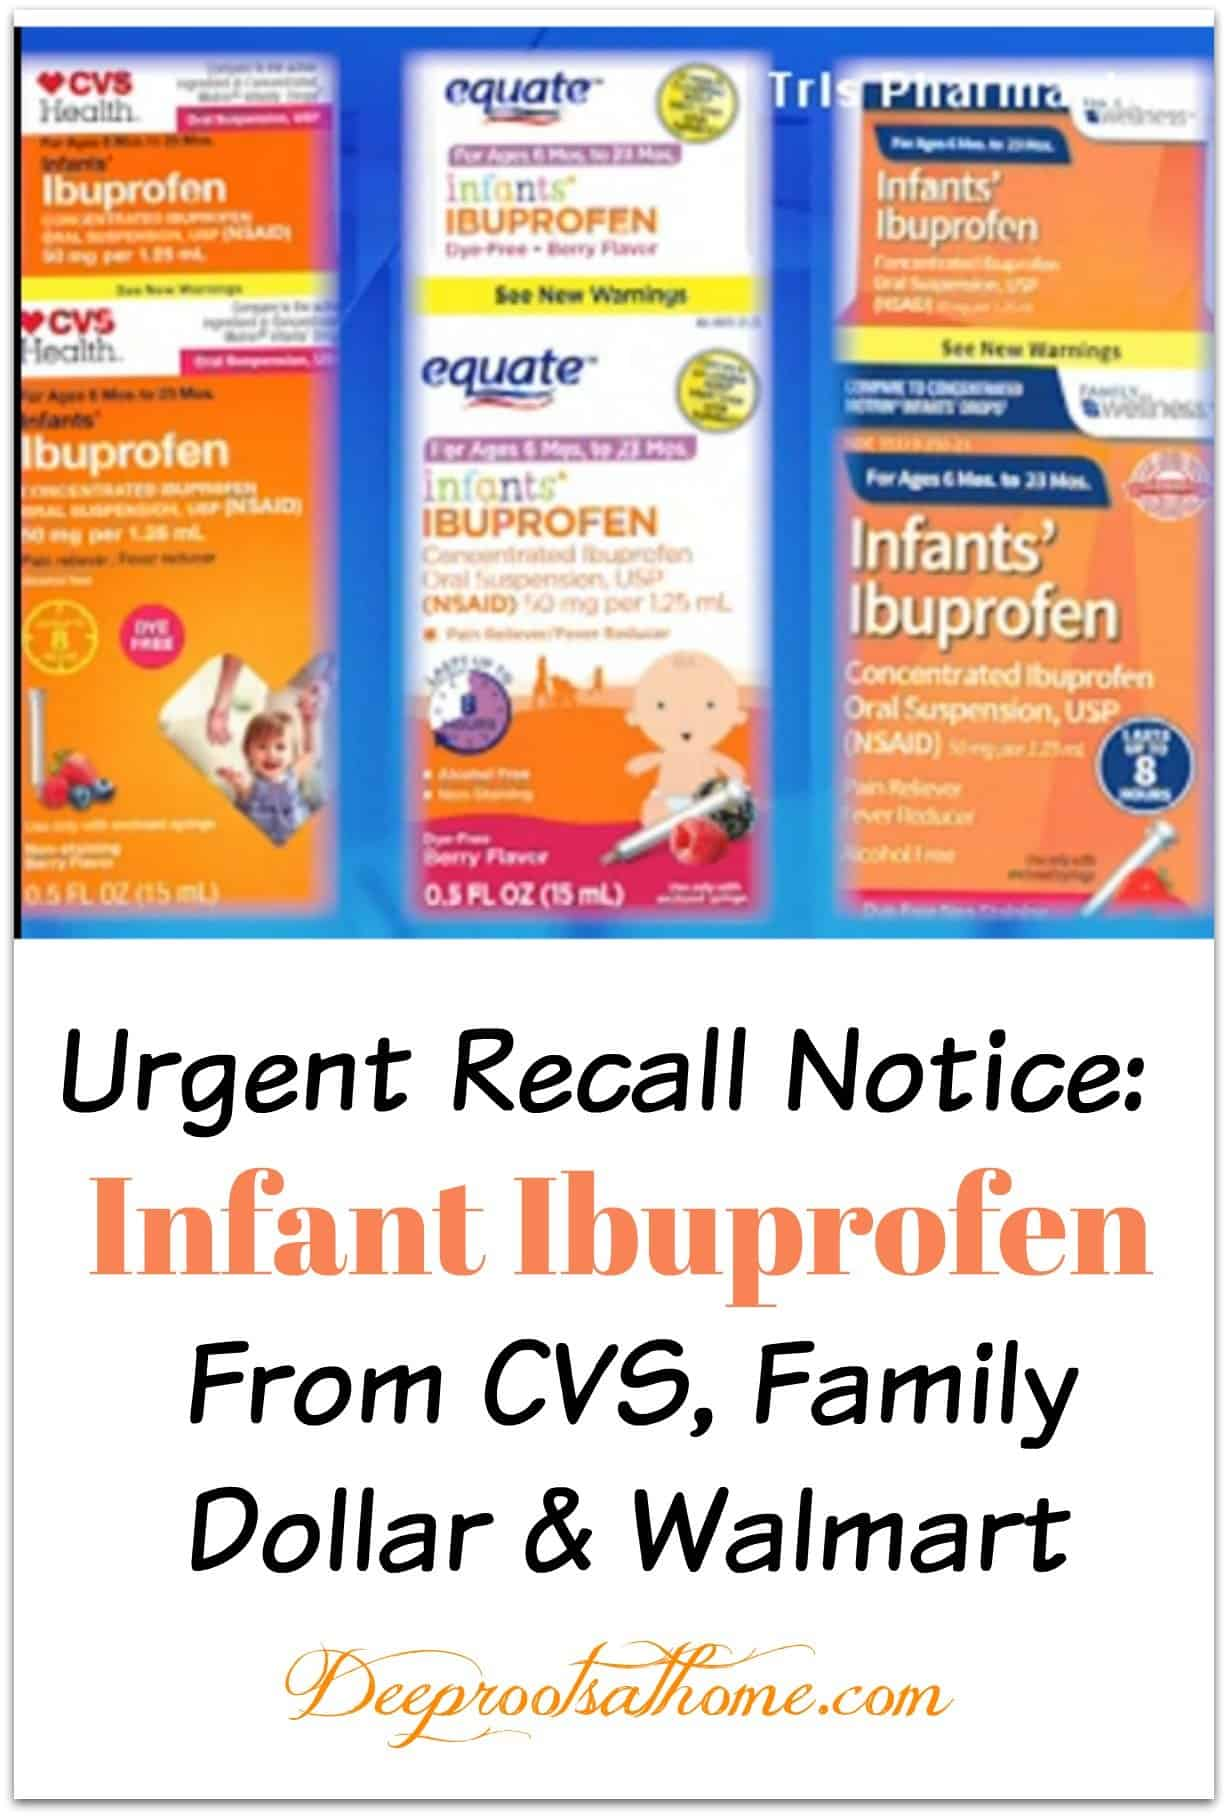 Urgent Recall Notice: Infant Ibuprofen From CVS, Family Dollar, Walmart. Photos of the 3 ibuprofen packaging recalled.